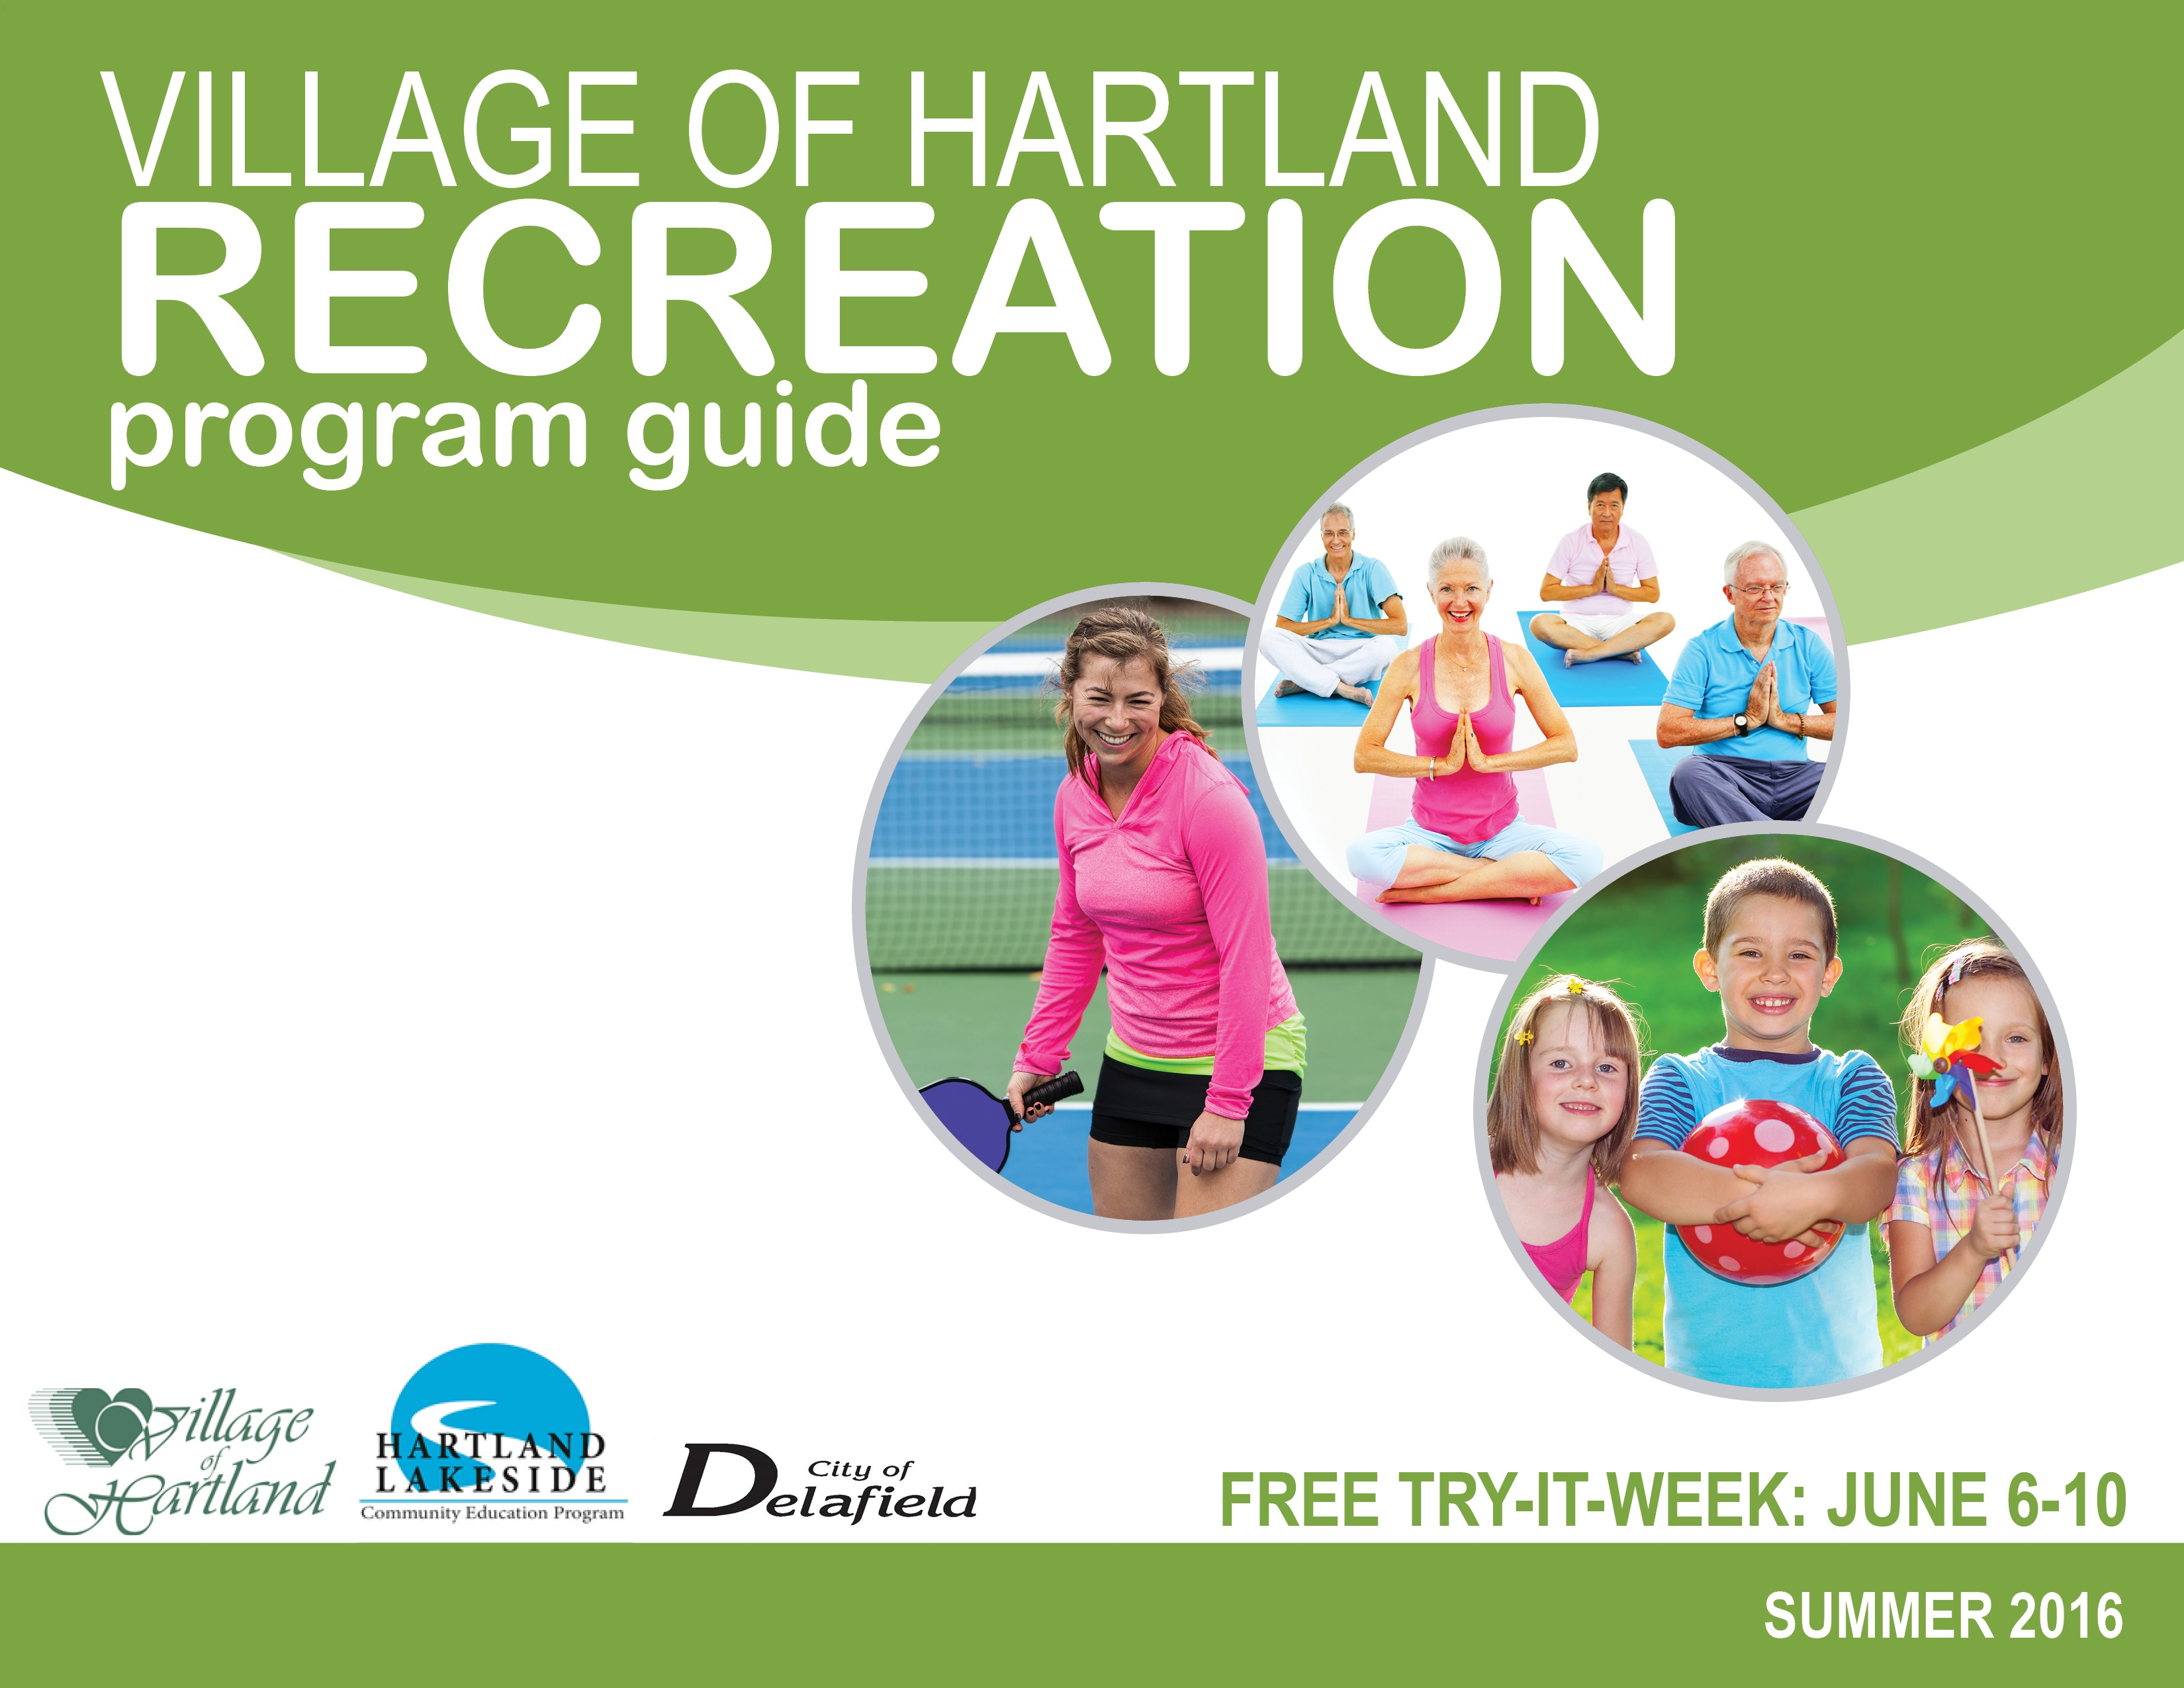 2016 SUMMER PROGRAM GUIDE (002).jpg